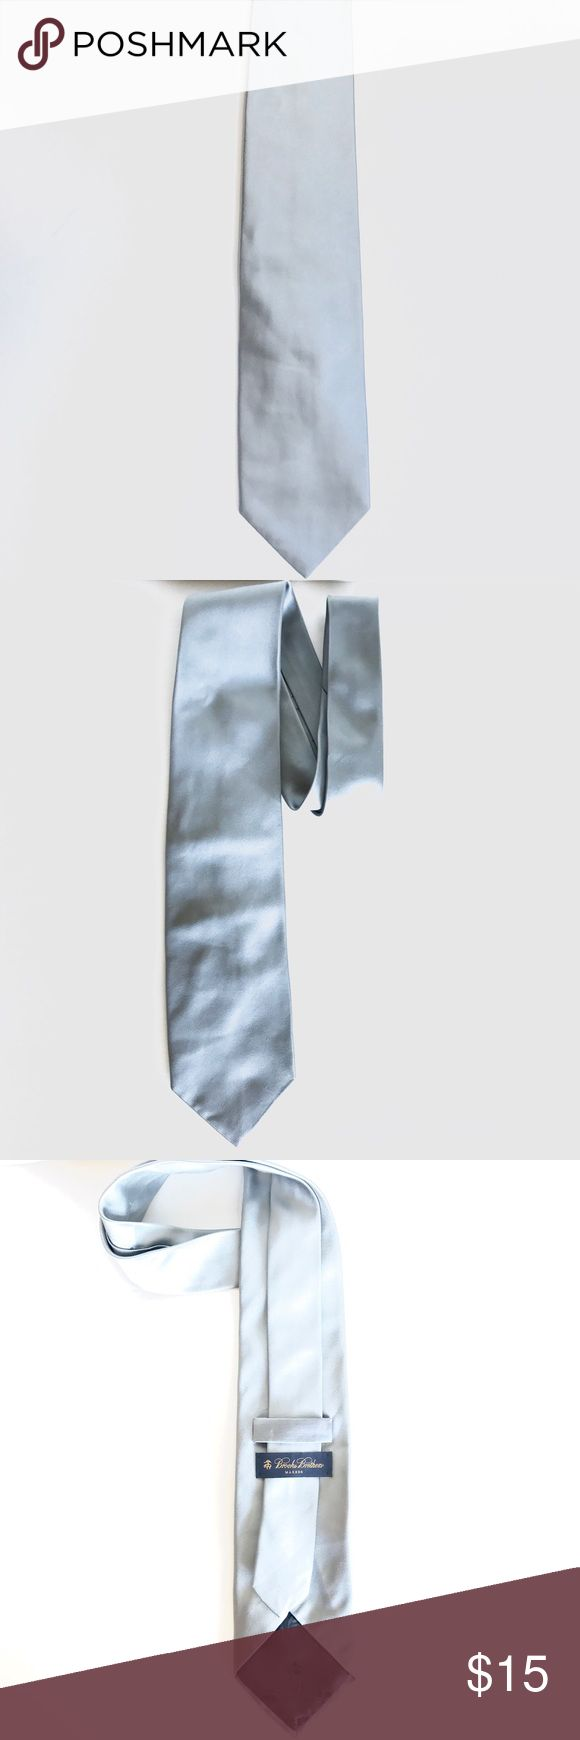 Brooks Brothers Tie Men's Brooks Brothers Tie, One Size, Grey Silver, Smoke Free Home Brooks Brothers Accessories Ties